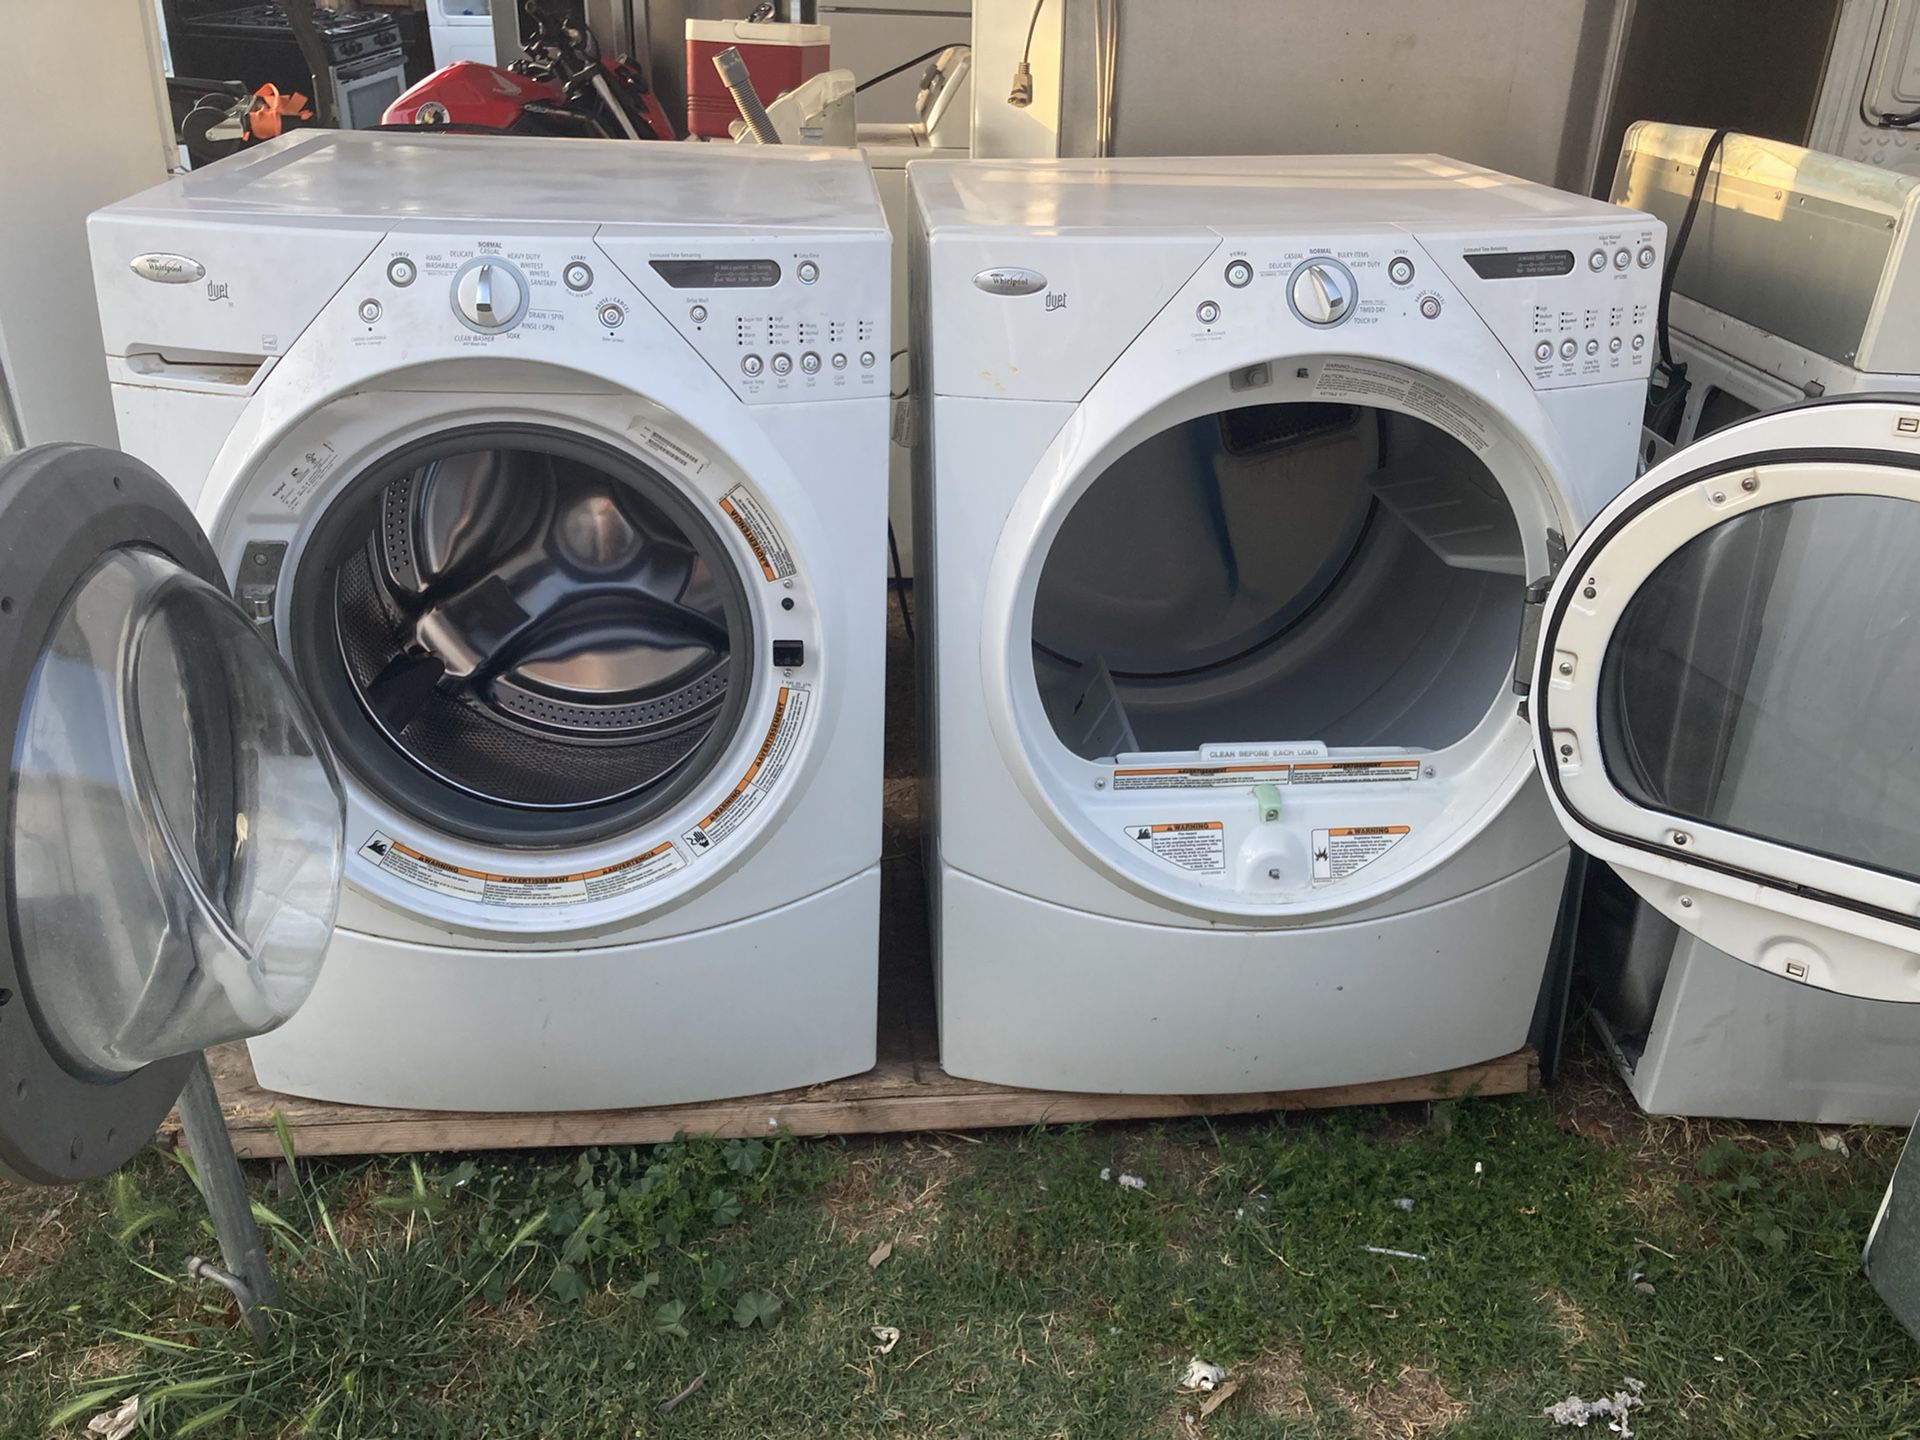 Washer And Gas Dryer Heavy Duty Brand Whirlpool Everything Works 3 Months Of Guarantee